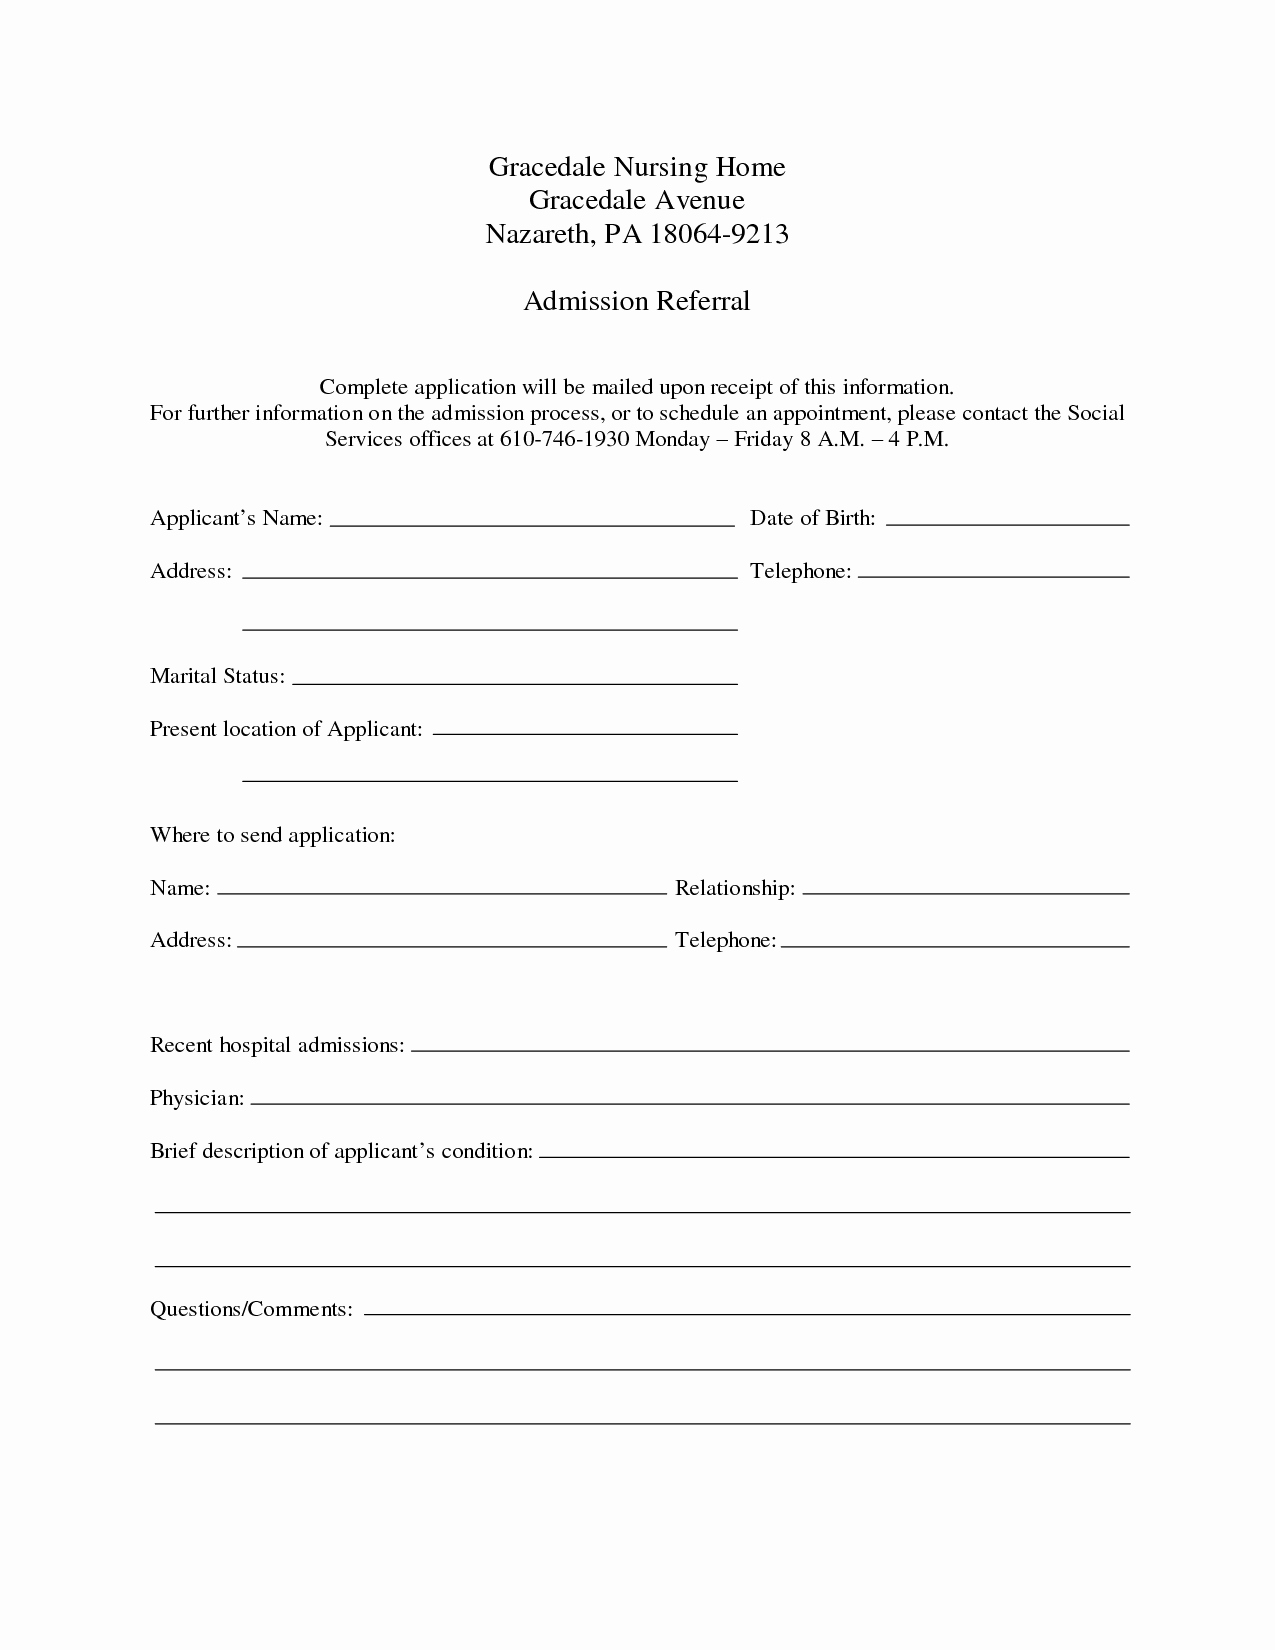 Emergency Room form Template Awesome 9 Best Of Free Printable Hospital Discharge forms